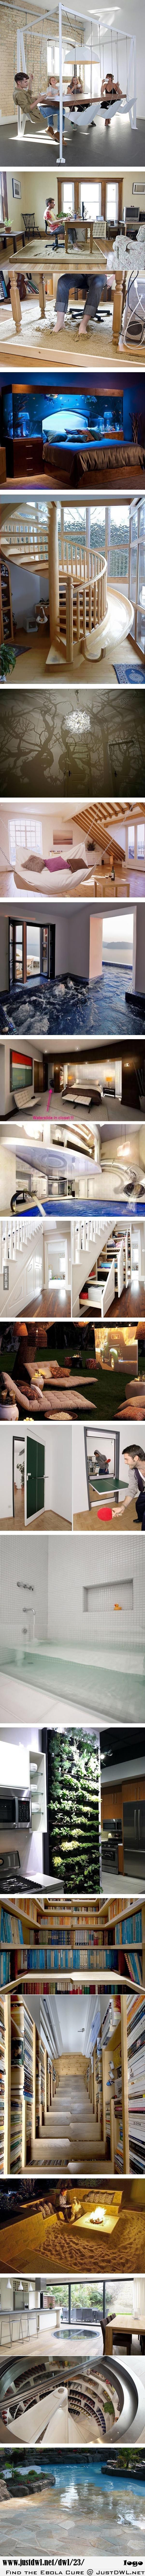 18 awesome home ideas